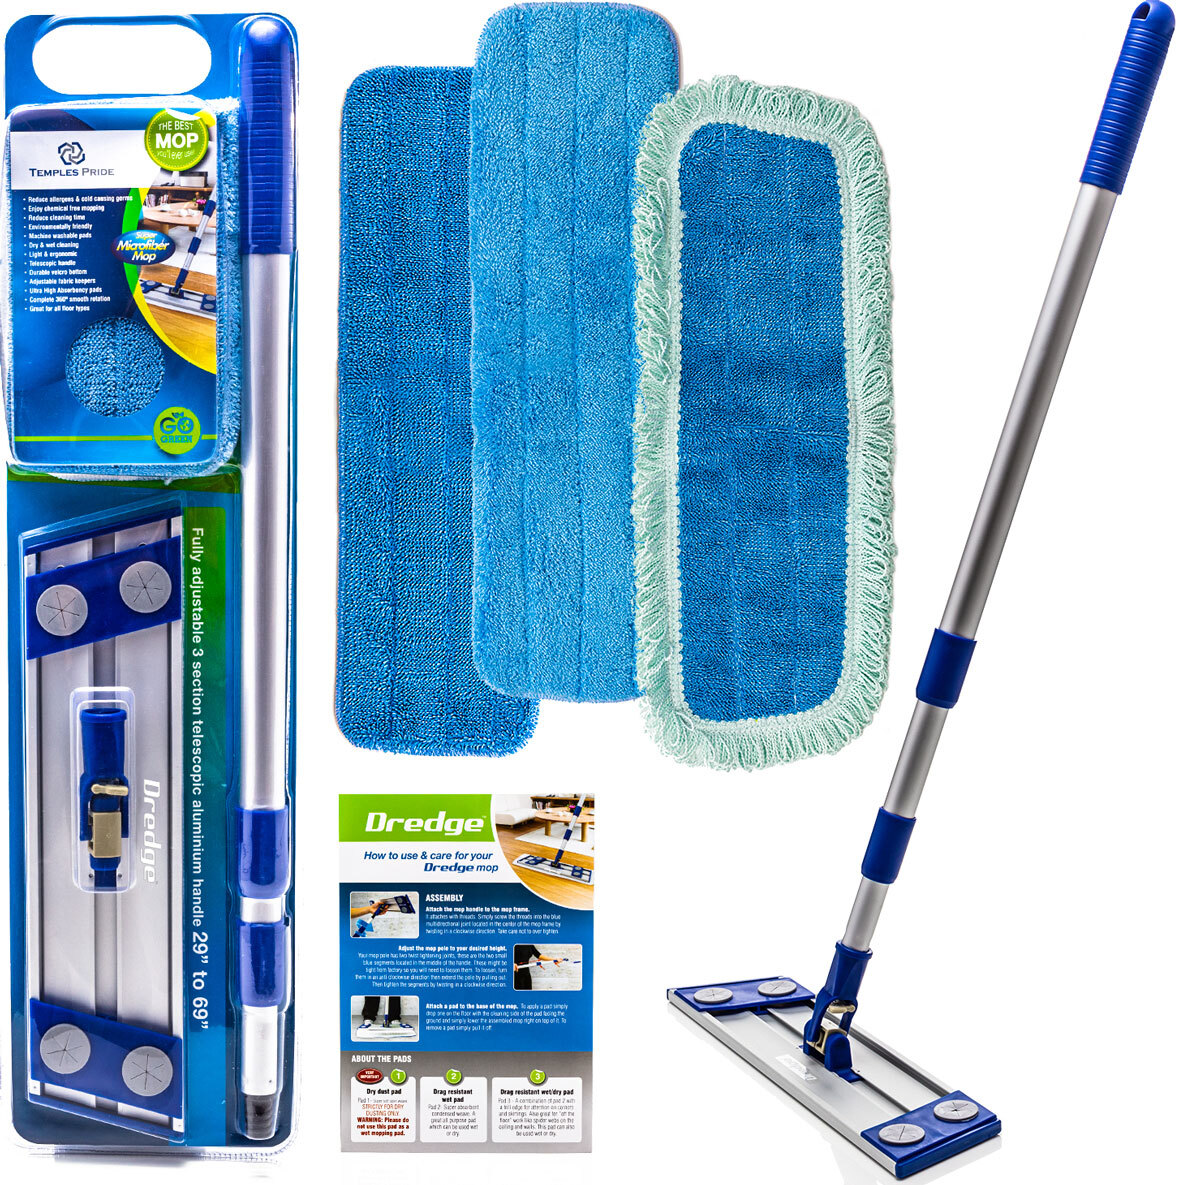 5 Reasons Why Microfiber Dust Mops are Great for Cleaning Hardwood Floors